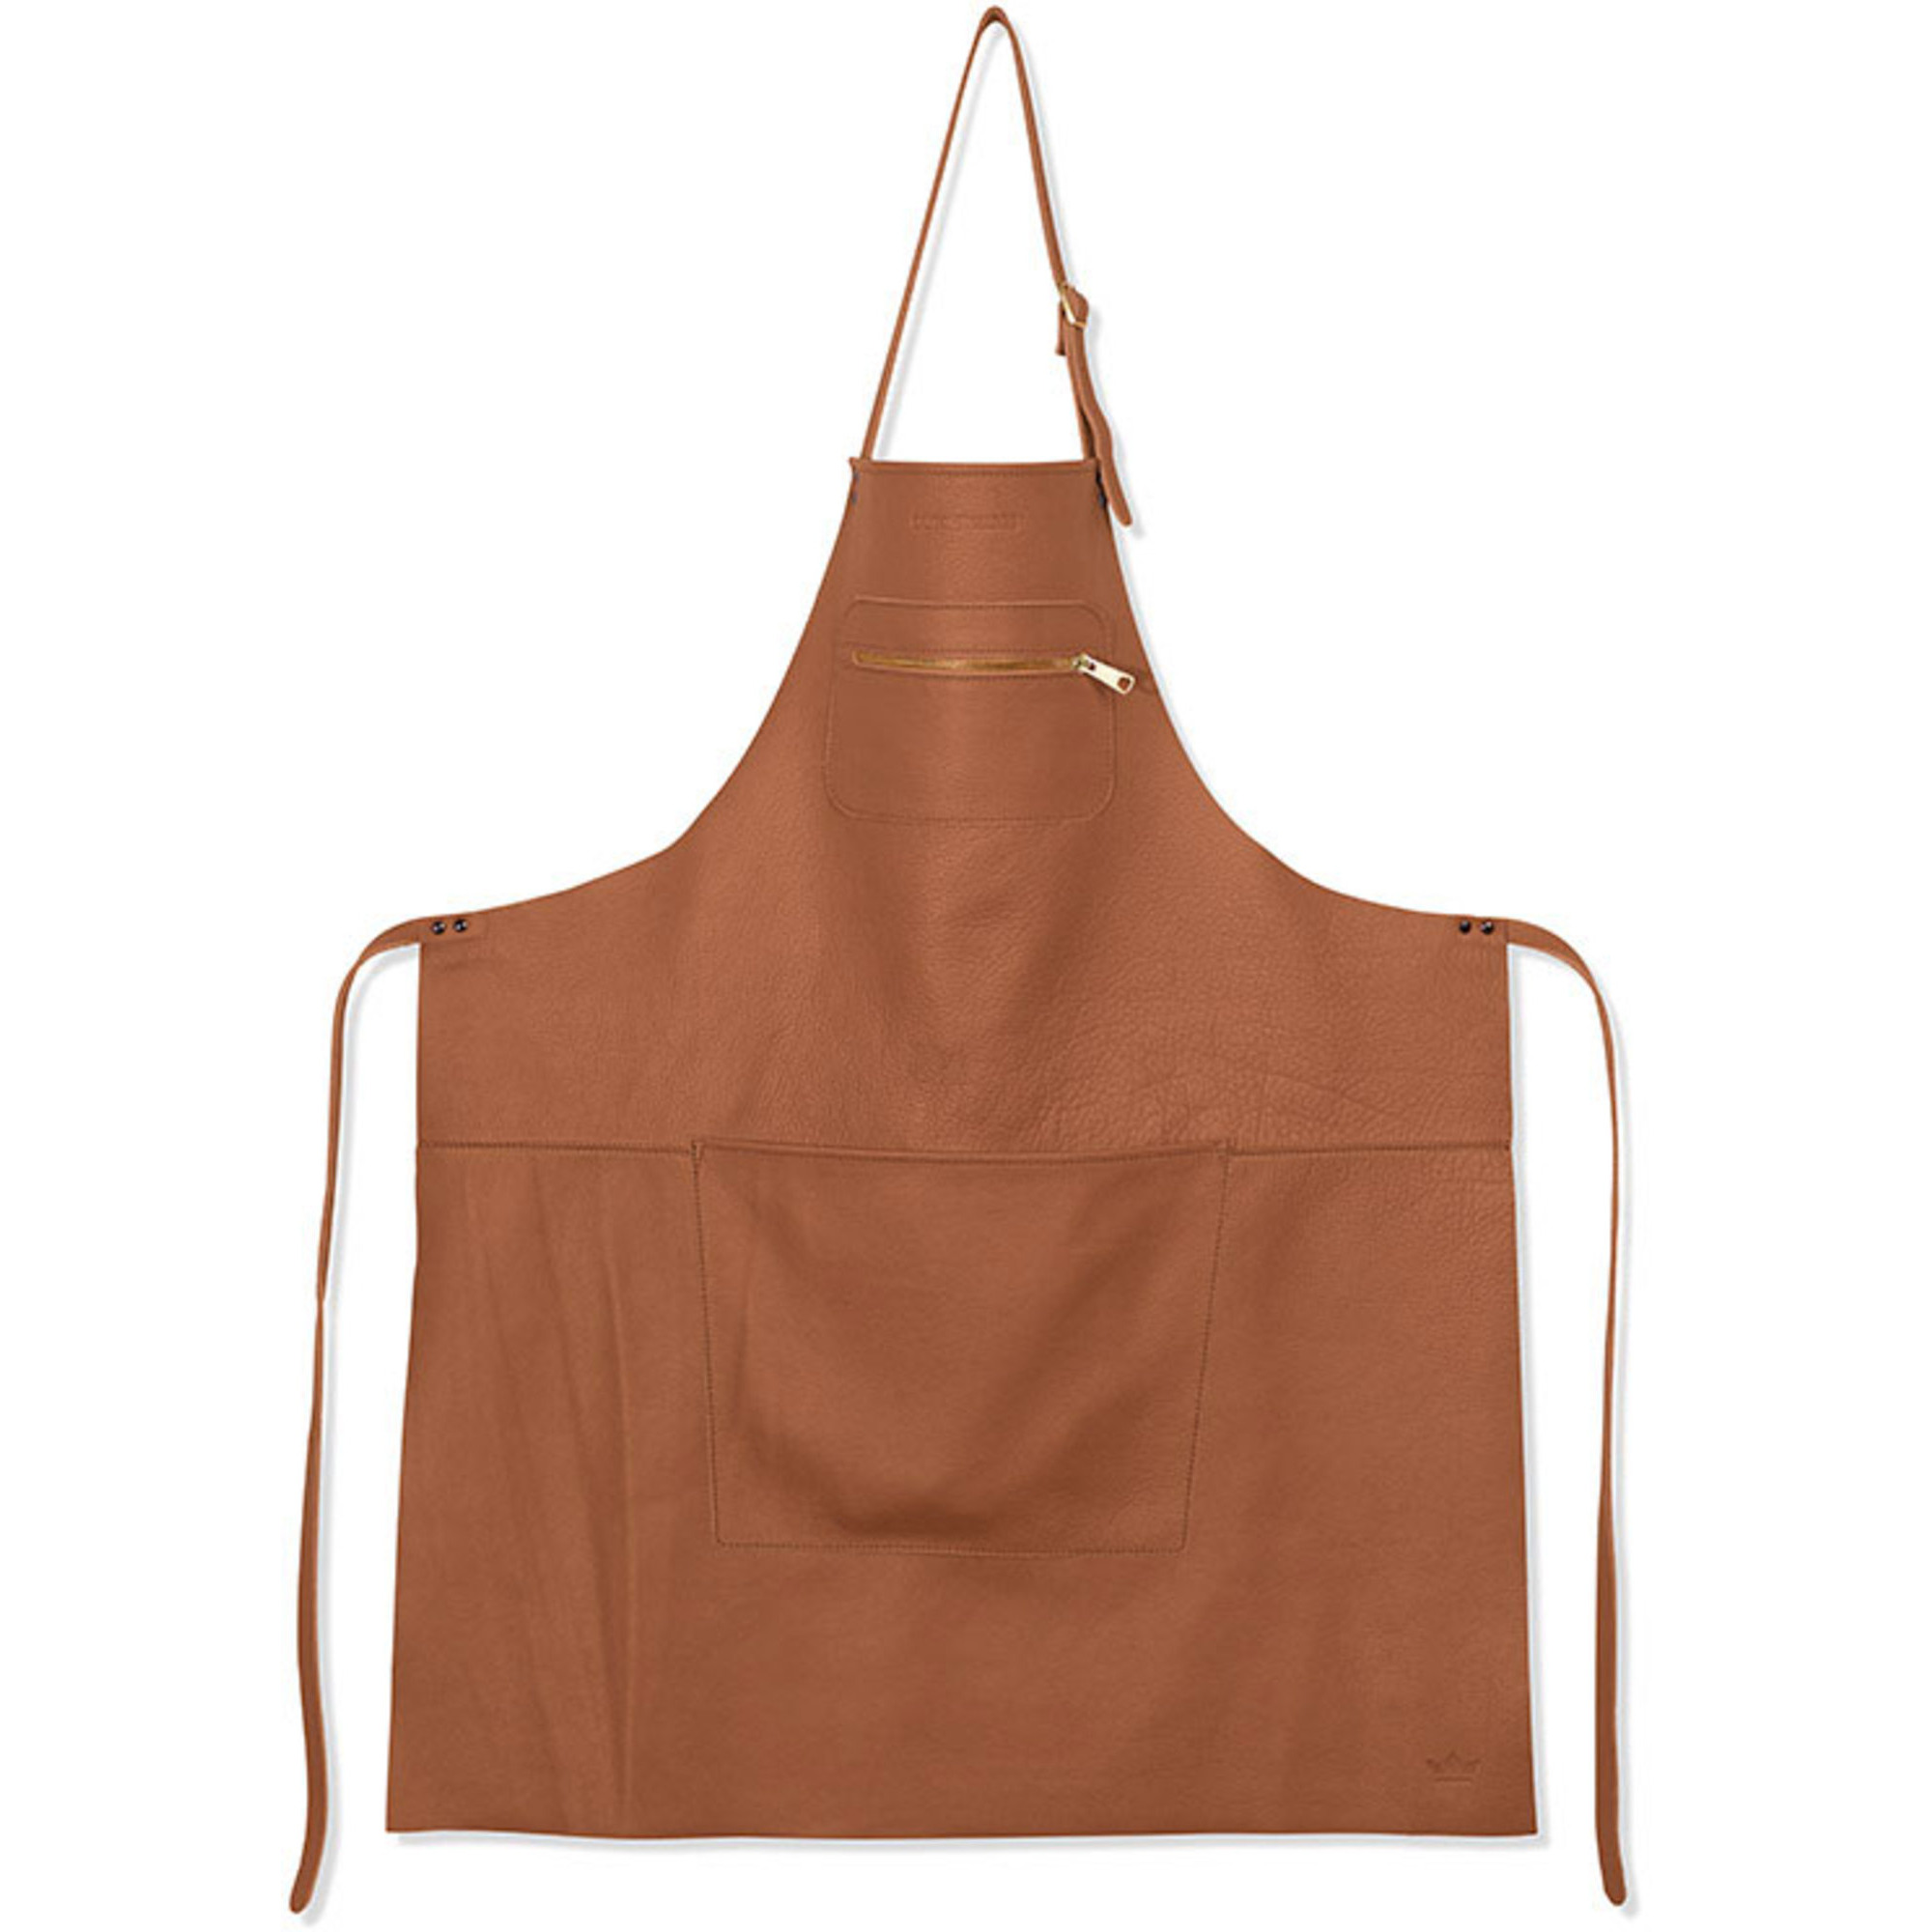 DutchDeluxes Amazing Apron New Natural